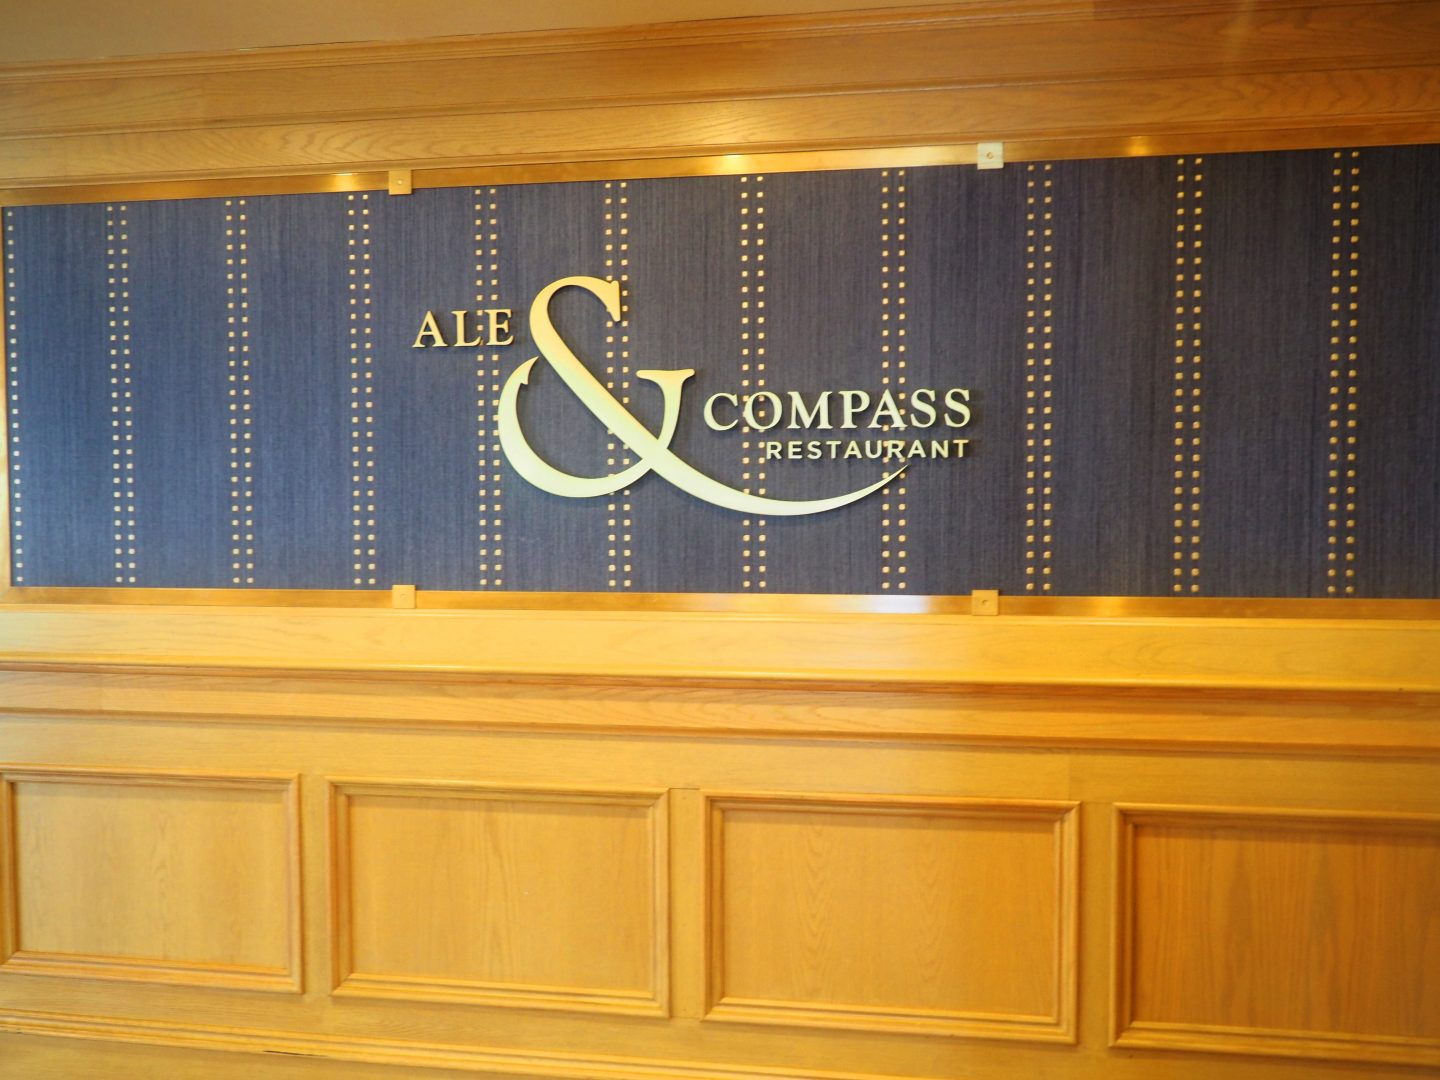 Breakfast at Ale and Compass Yacht Club Walt Disney World